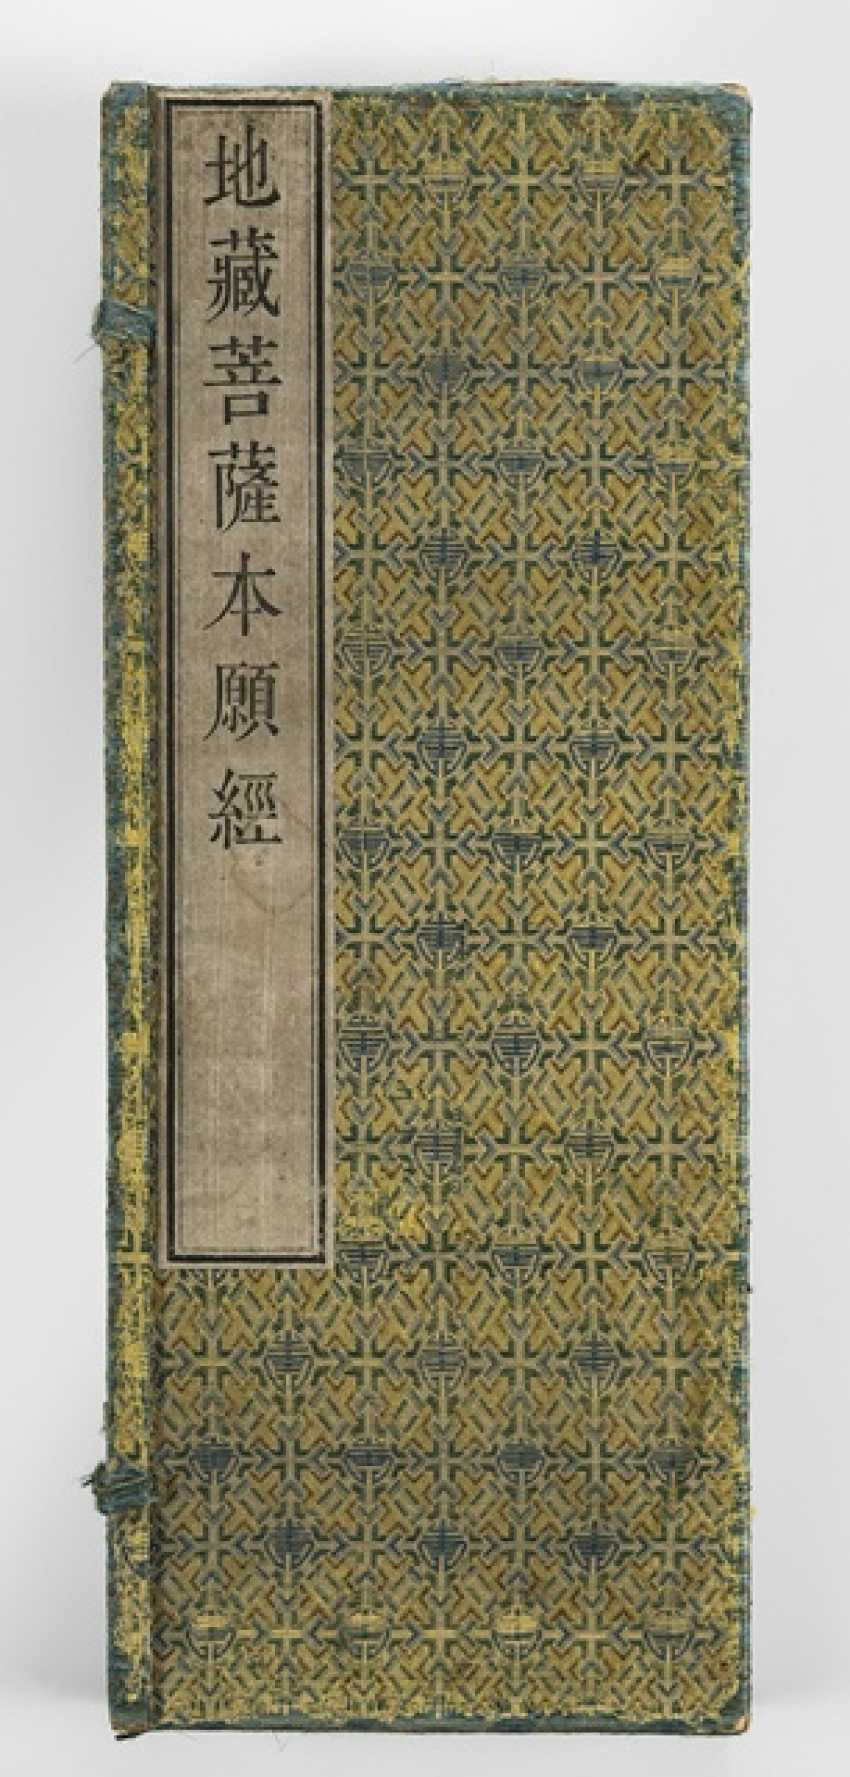 Sutra of the vows of the Bodhisattva Ksitigarbha - Dicang pusa benyuan jing - photo 1